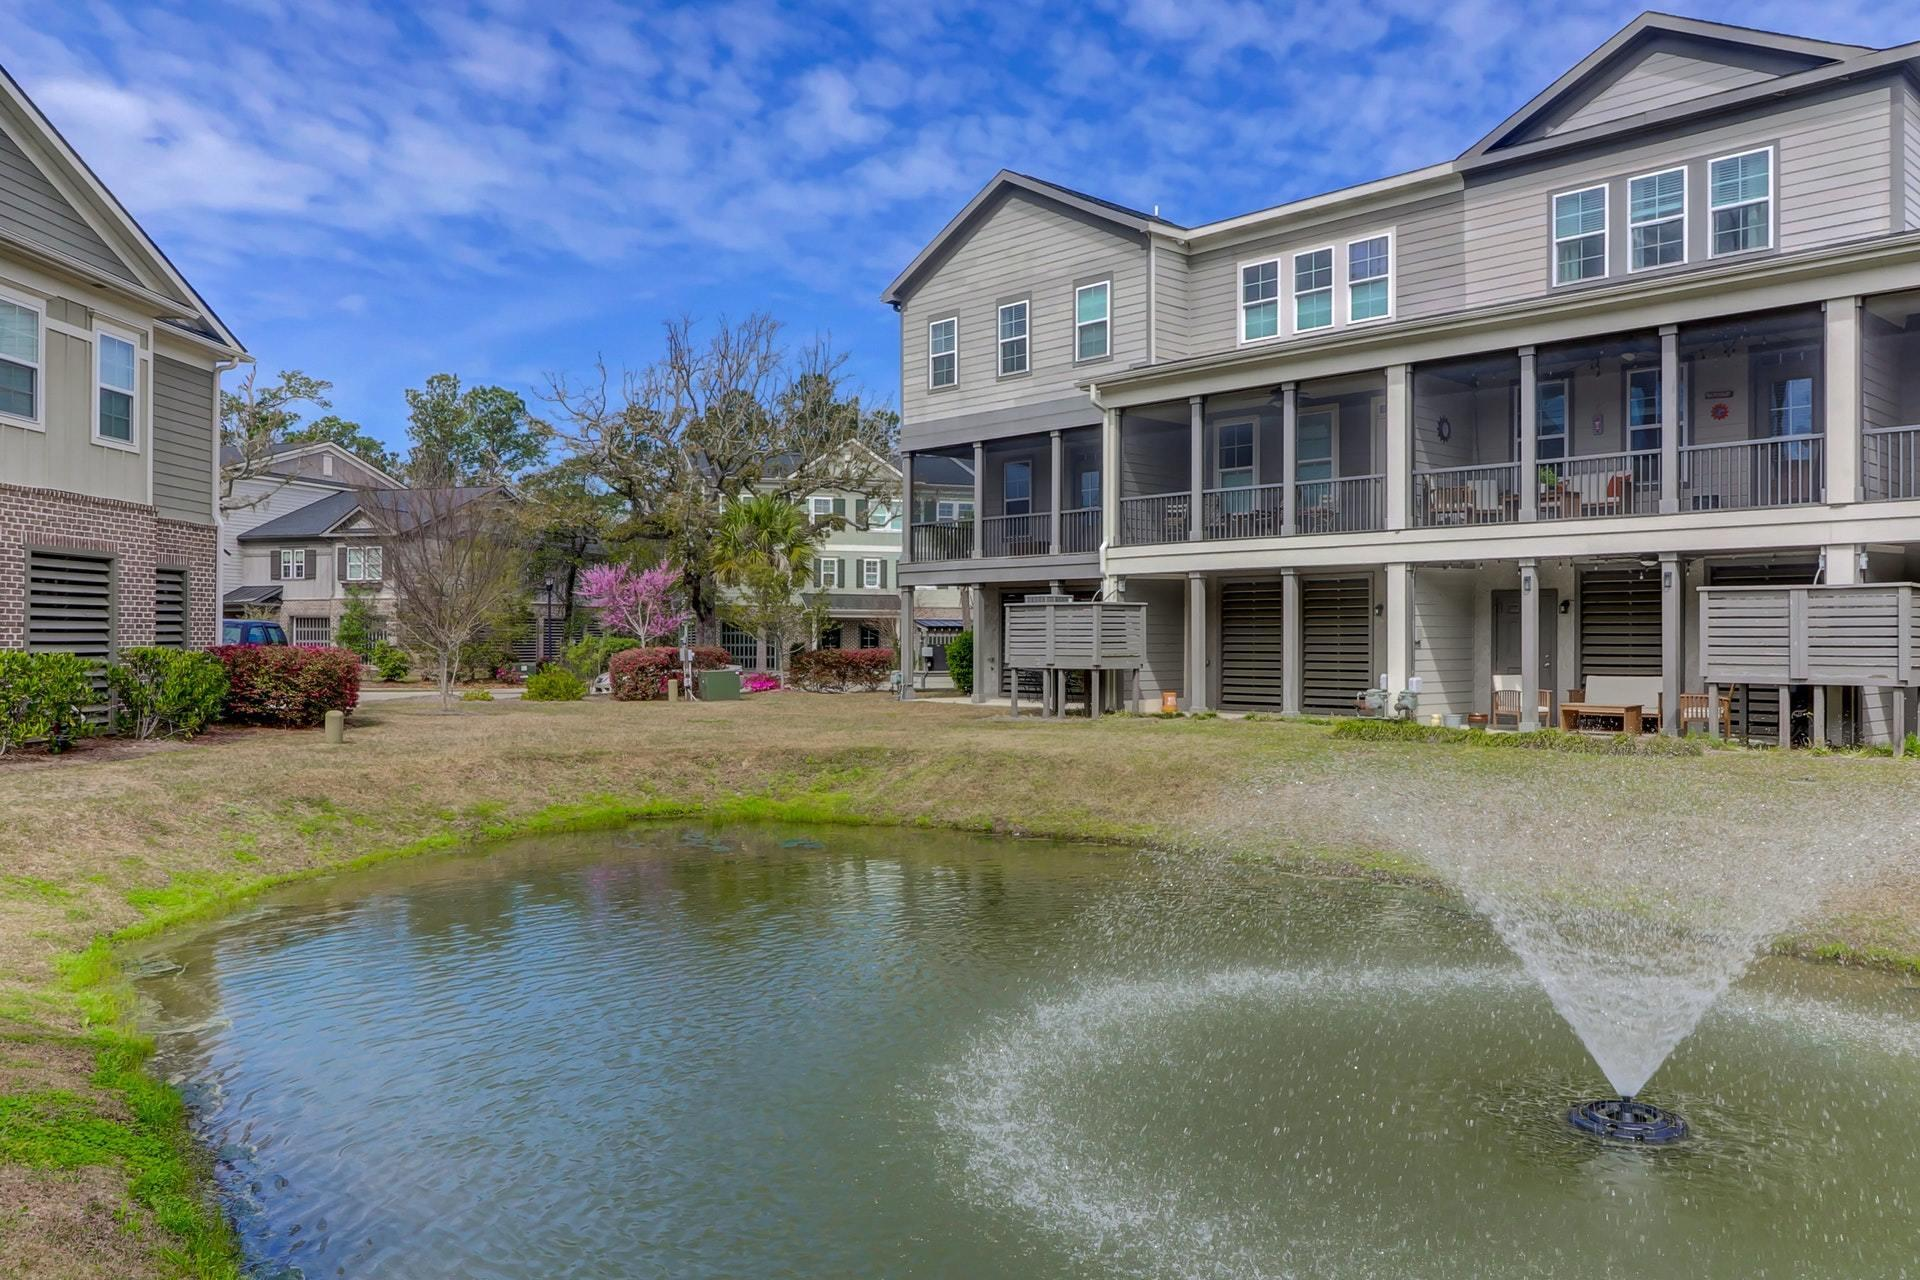 Etiwan Pointe Homes For Sale - 220 Slipper Shell, Mount Pleasant, SC - 18